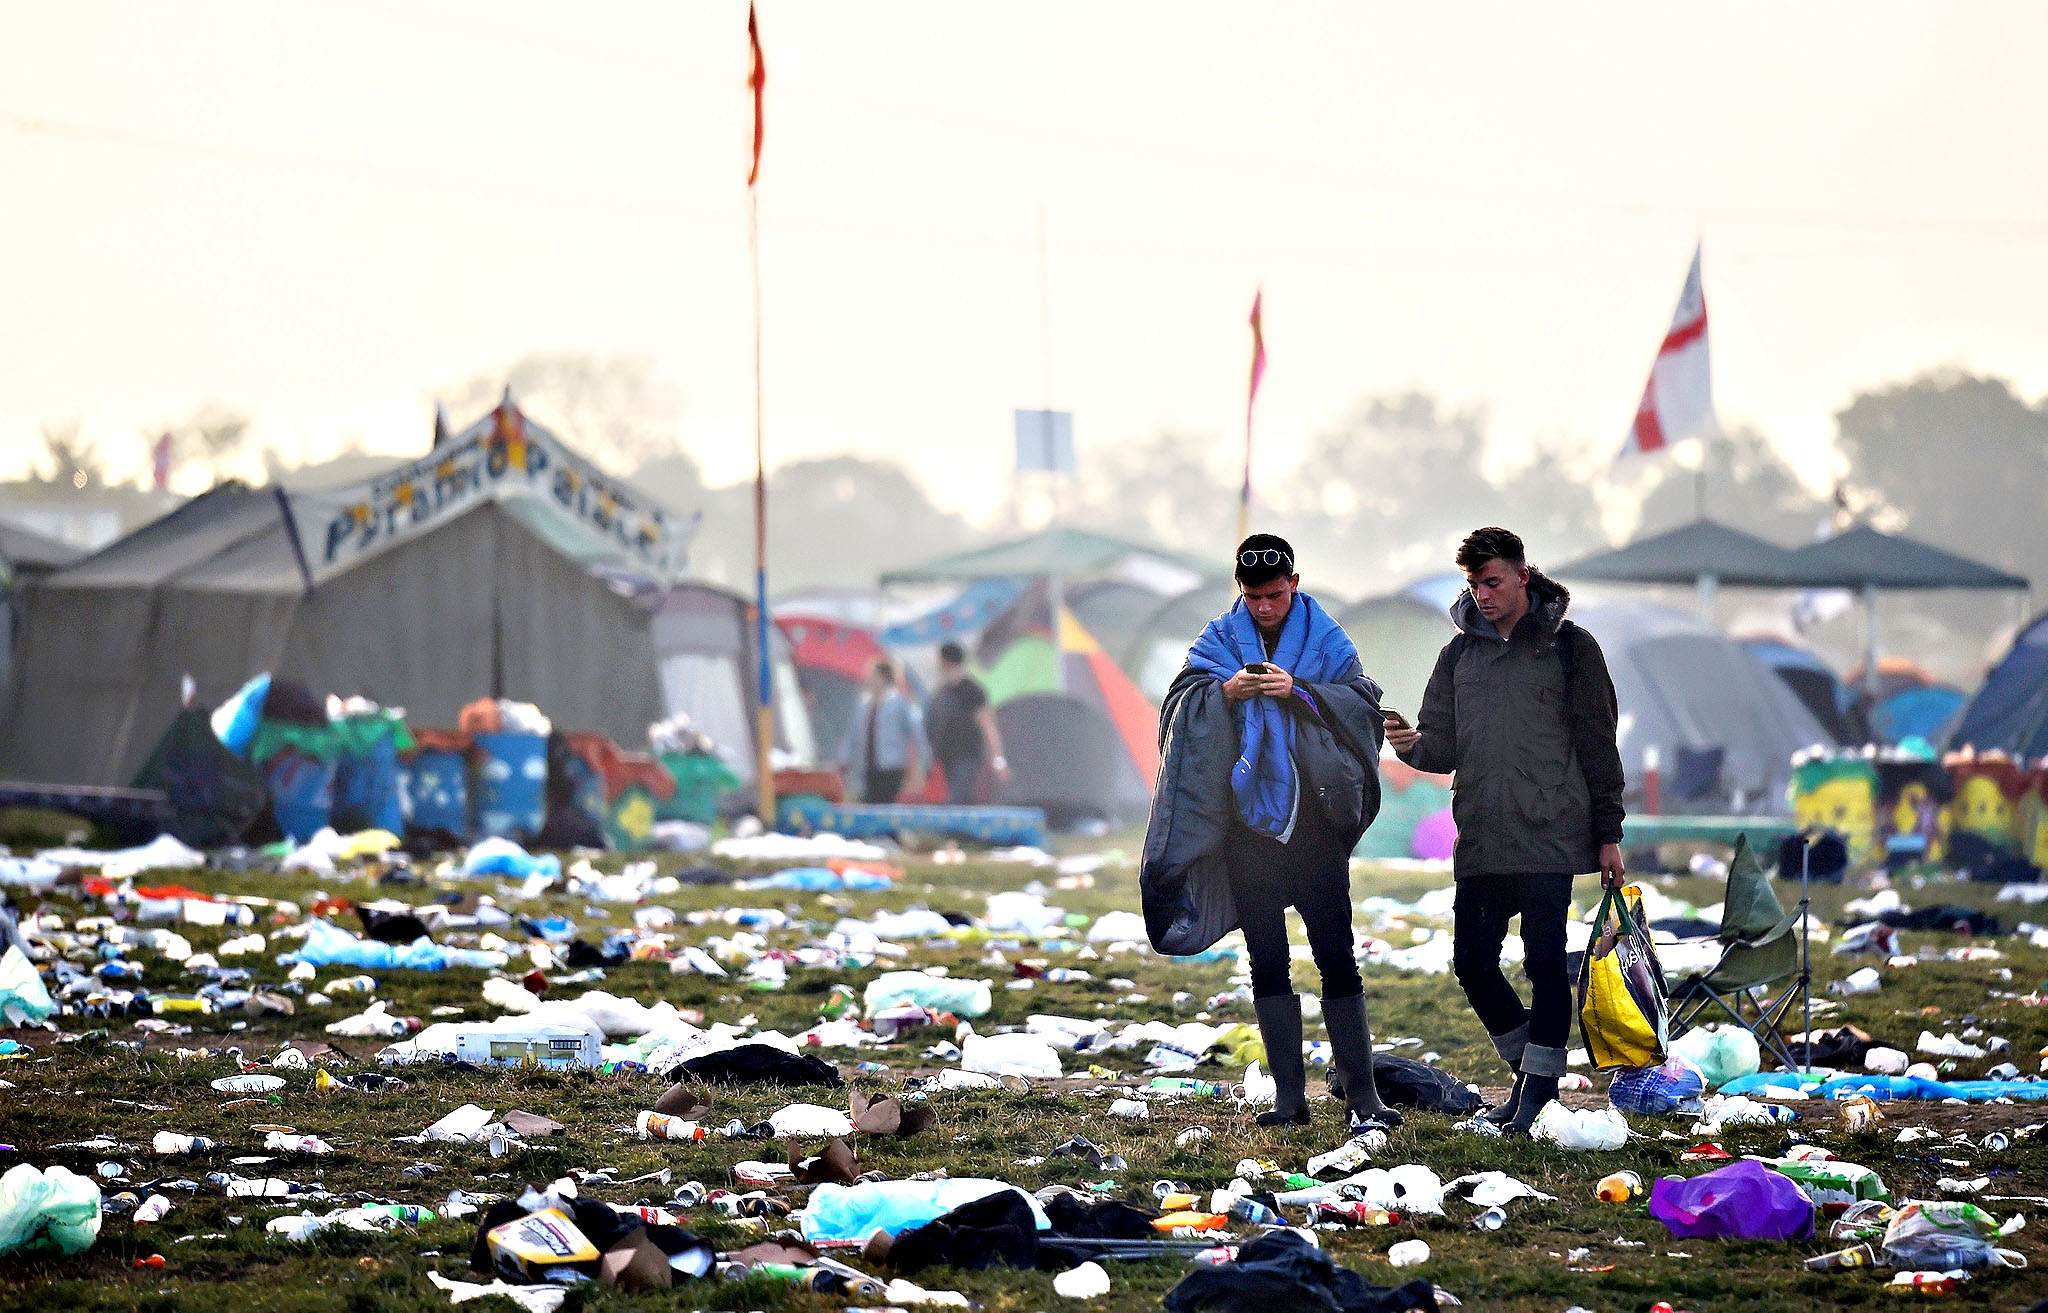 Revellers walk through rubbish left in front of the Pyramid Stage as they leave Worthy Farm in Somerset after the Glastonbury Festival in Britain June 29, 2015